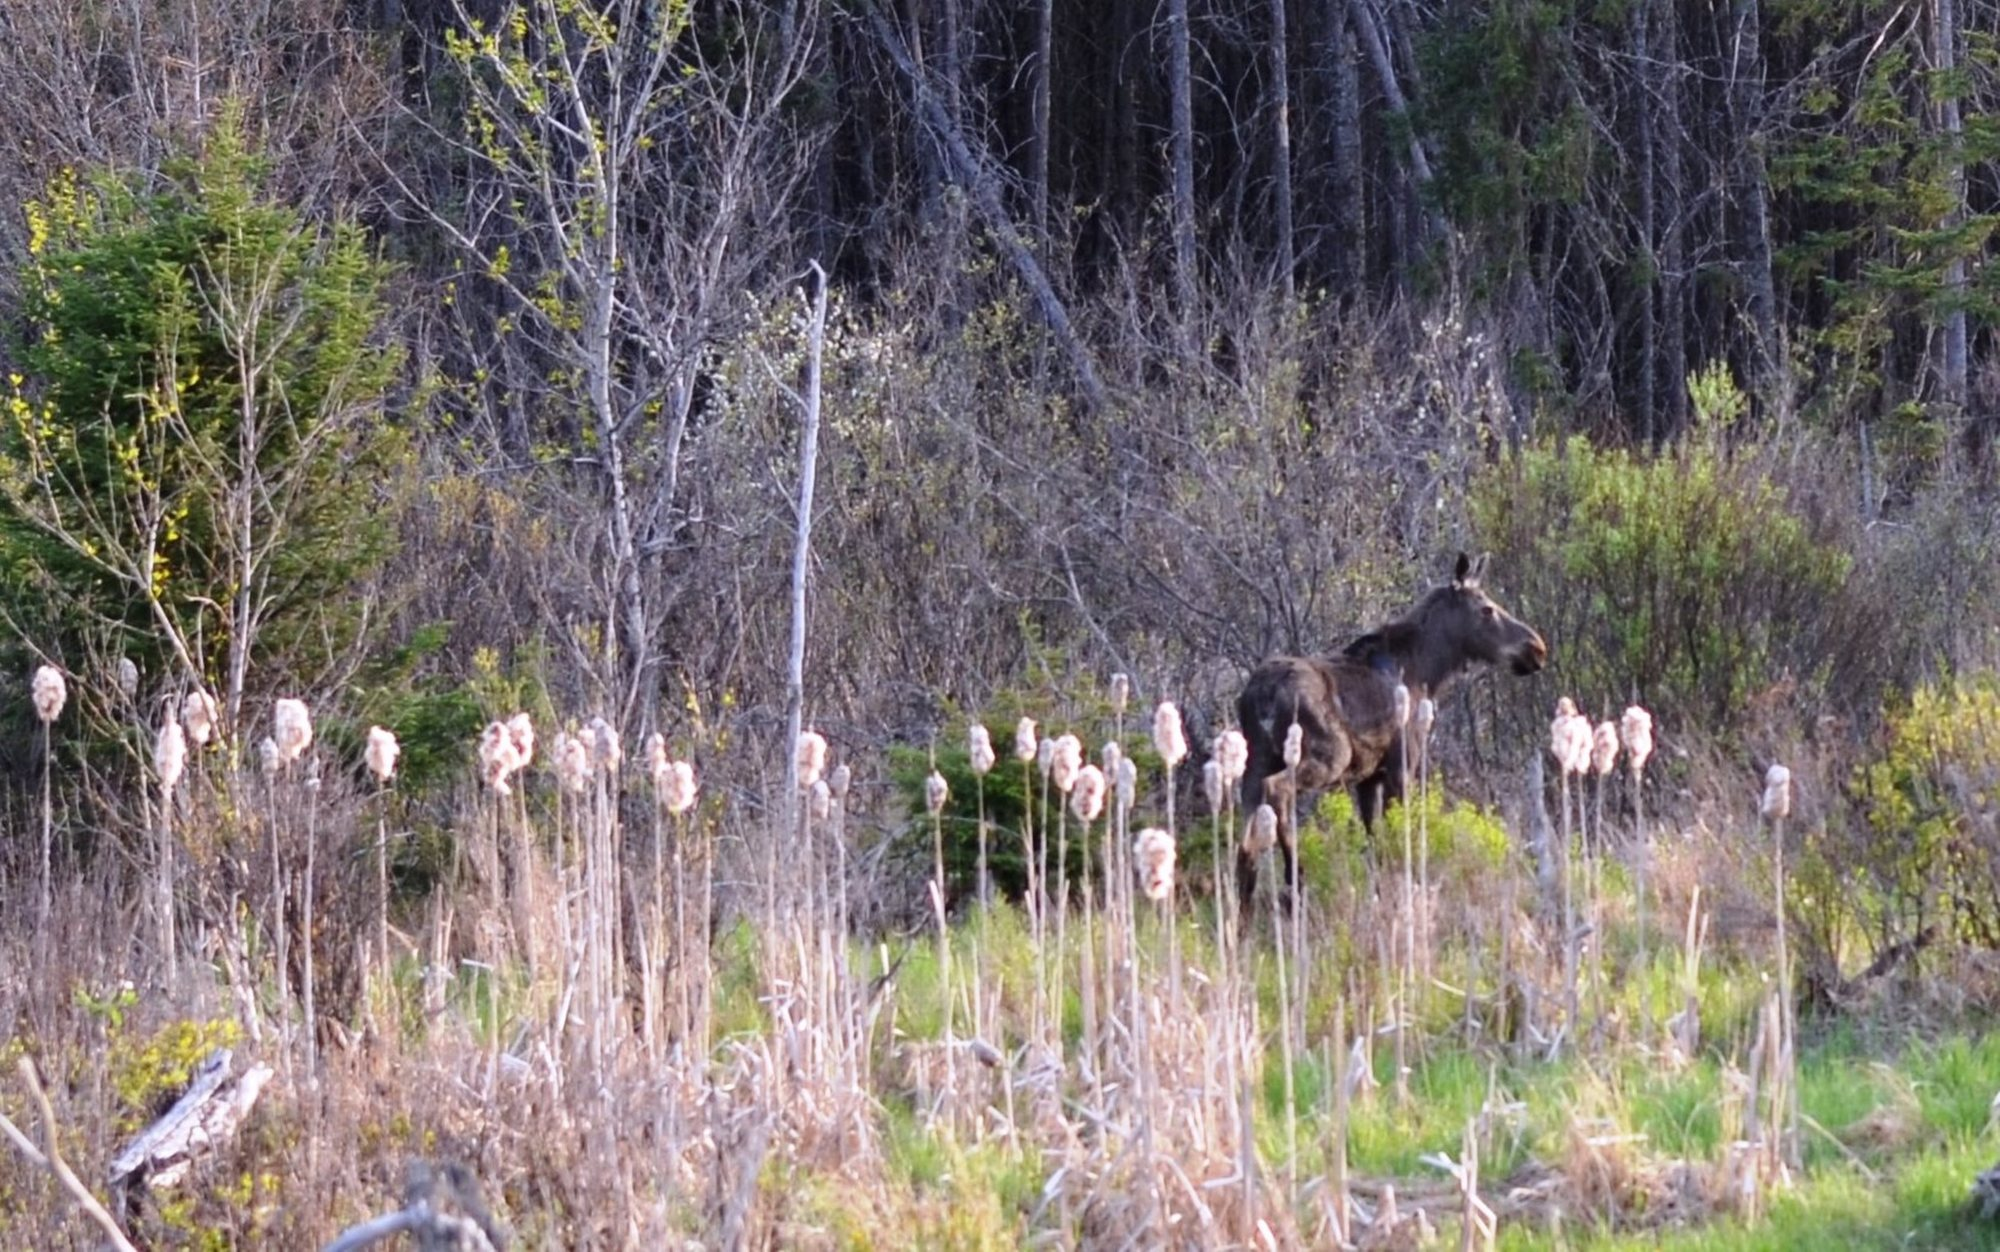 A moose stands not far off U.S. 41 near Humboldt in Marquette County.